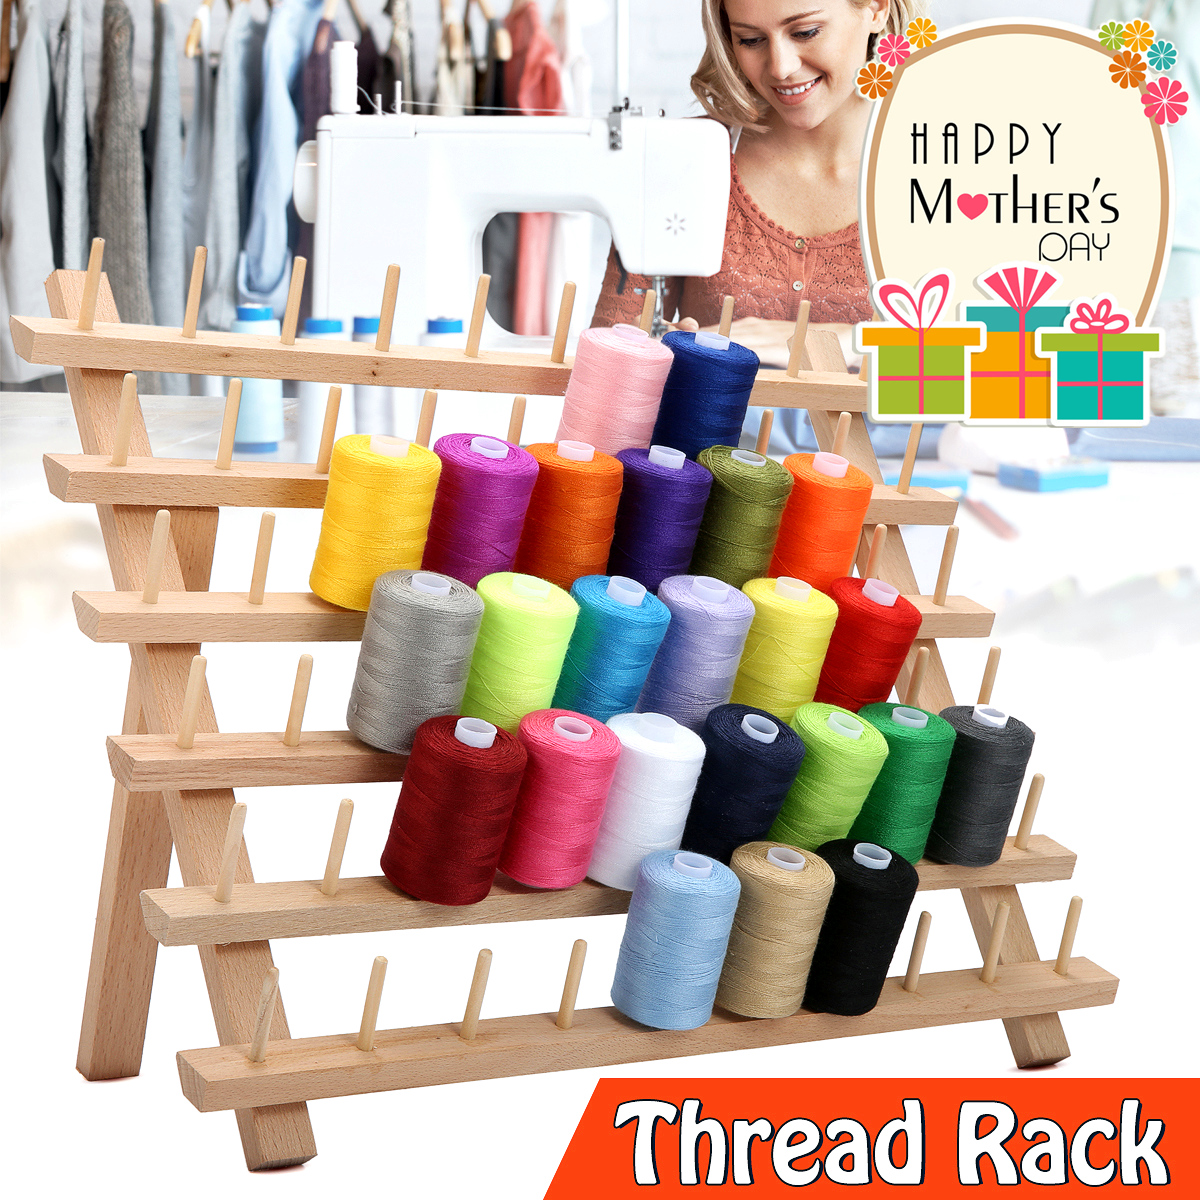 KiWarm Foldable Wood Thread Stand Rack Holds 60 Spools Organizer Embroidery Machine Sewing Storage Holder Sewing Accessories